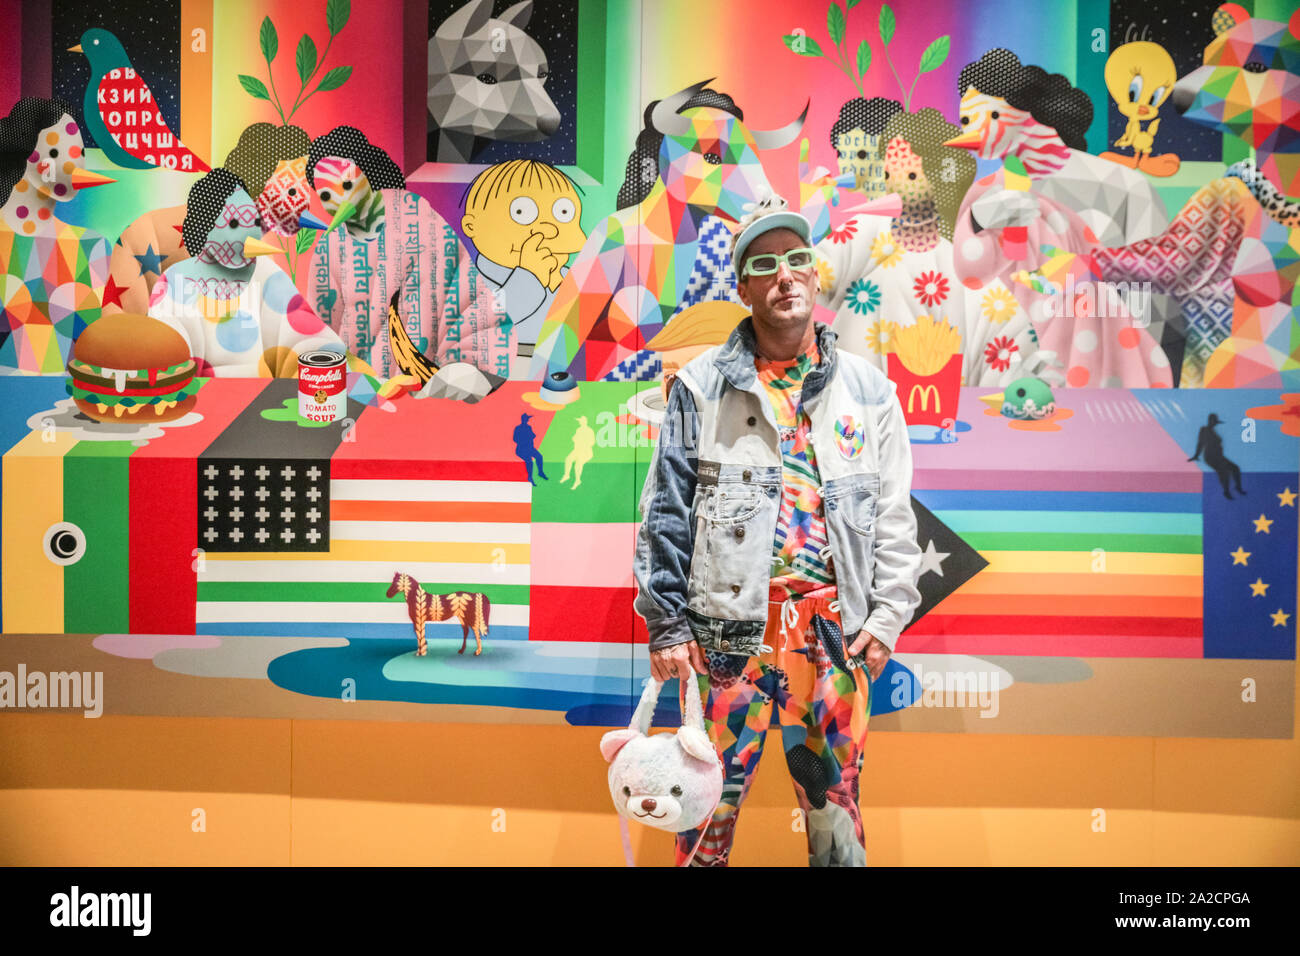 Chelsea Sorting Office, London, UK, 02 Oct 2019. Artist Okuda San Miguel with his work entitled 'The Last Supper II'. The 10th anniversary installation halls of Moniker Art Fair see the best of British urban artists, featuring a stellar roster of creatives, including acclaimed international artists making their UK debuts and Moniker's own Spotlight Artists of 2019. Credit: Imageplotter/Alamy Live News Stock Photo